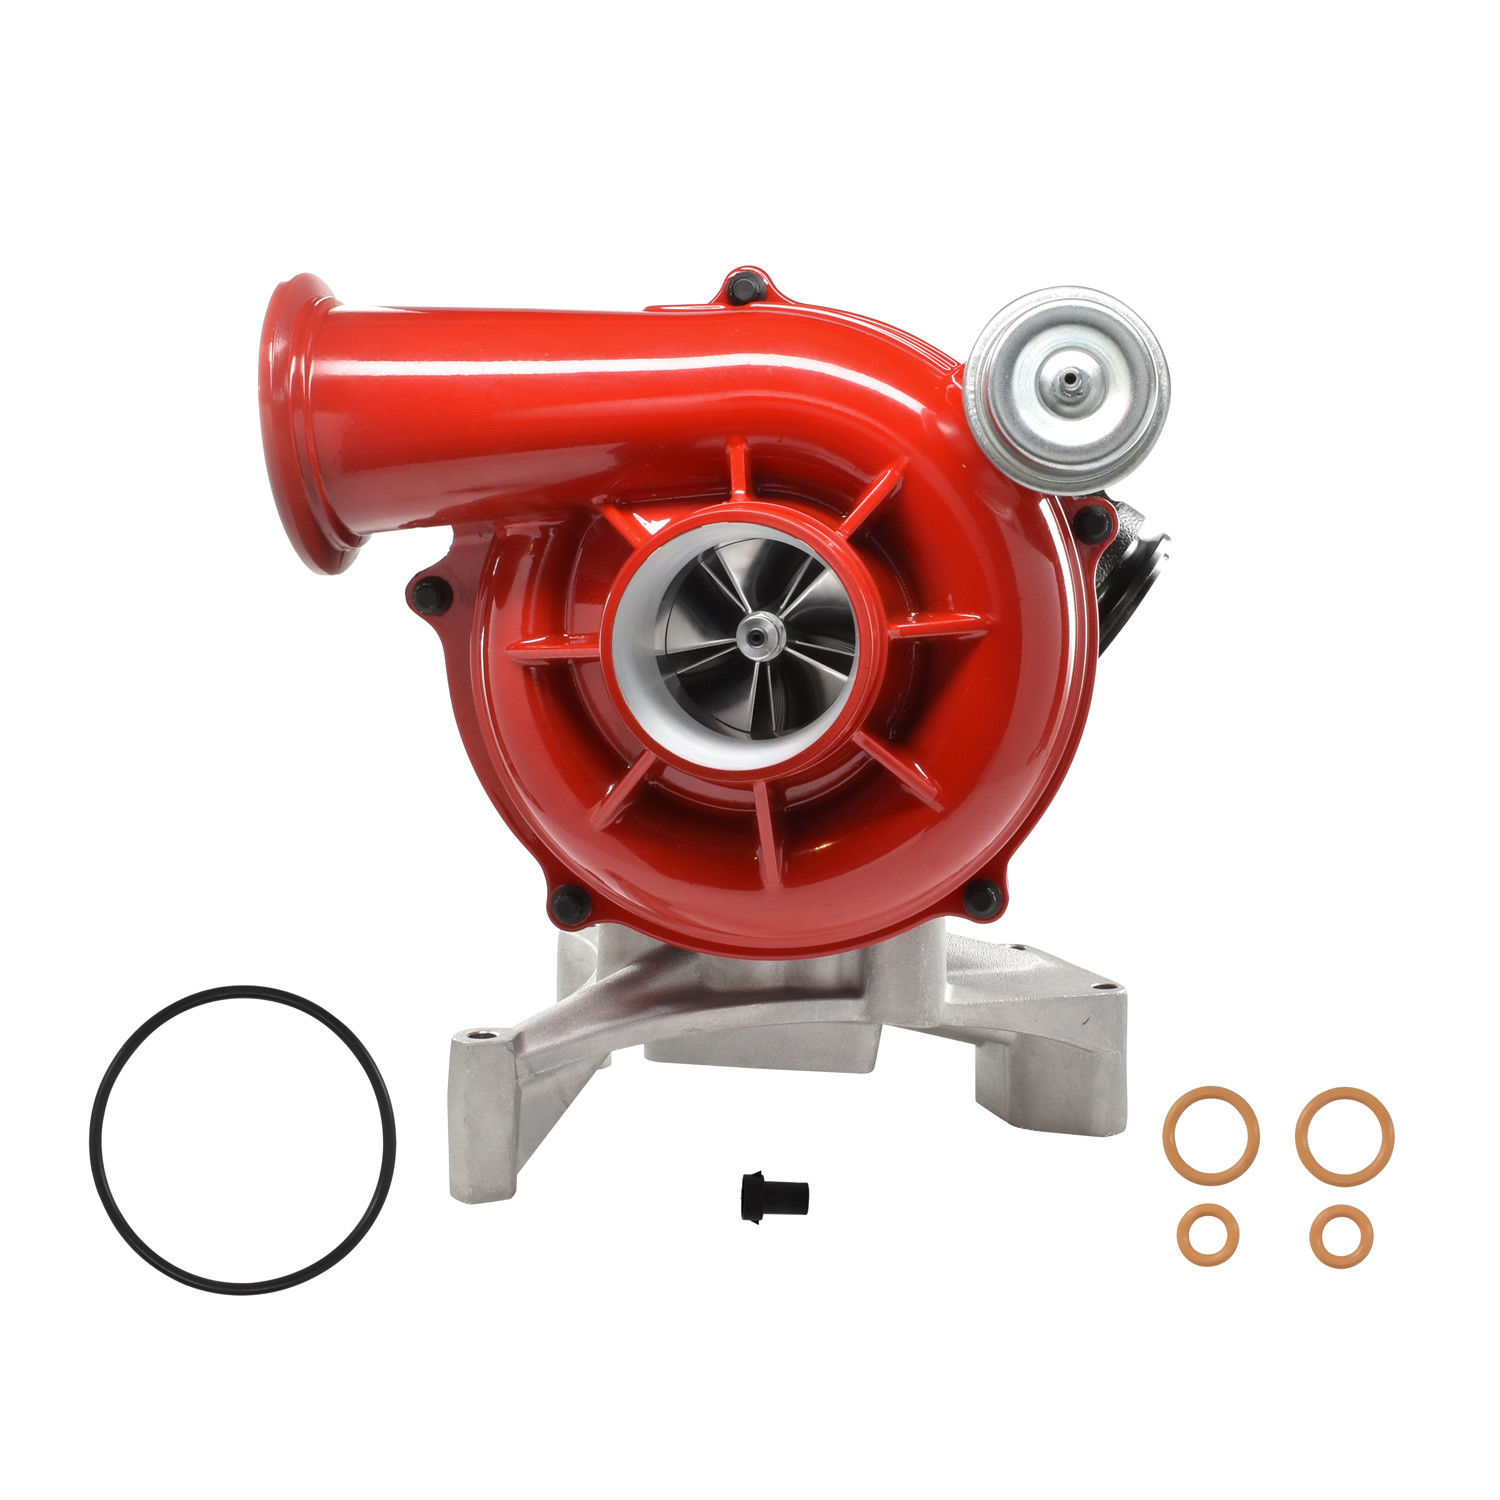 GTP38 High Performance Turbocharger 5+5 Billet Wheel Red For 7.3L 99.5-03 Ford Powerstroke Diesel